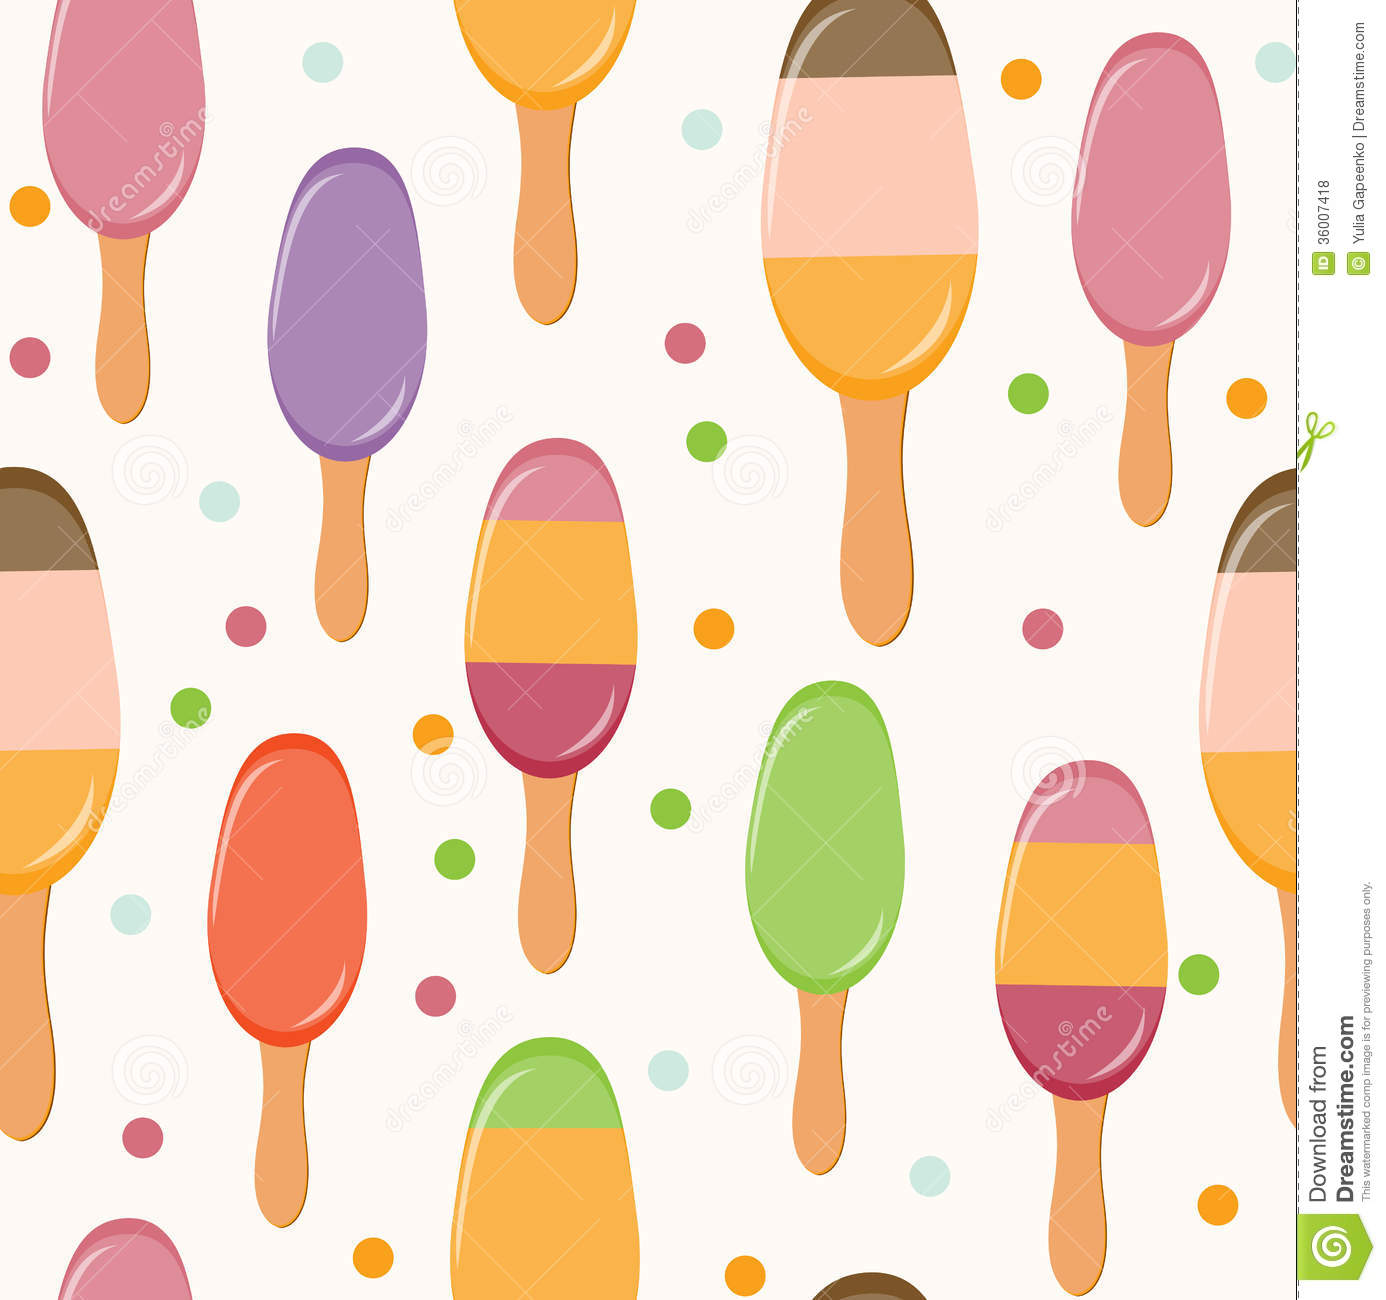 Ice Cream Wallpapers For Desktop: Retro Ice Cream Seamless Pattern Background. Stock Vector